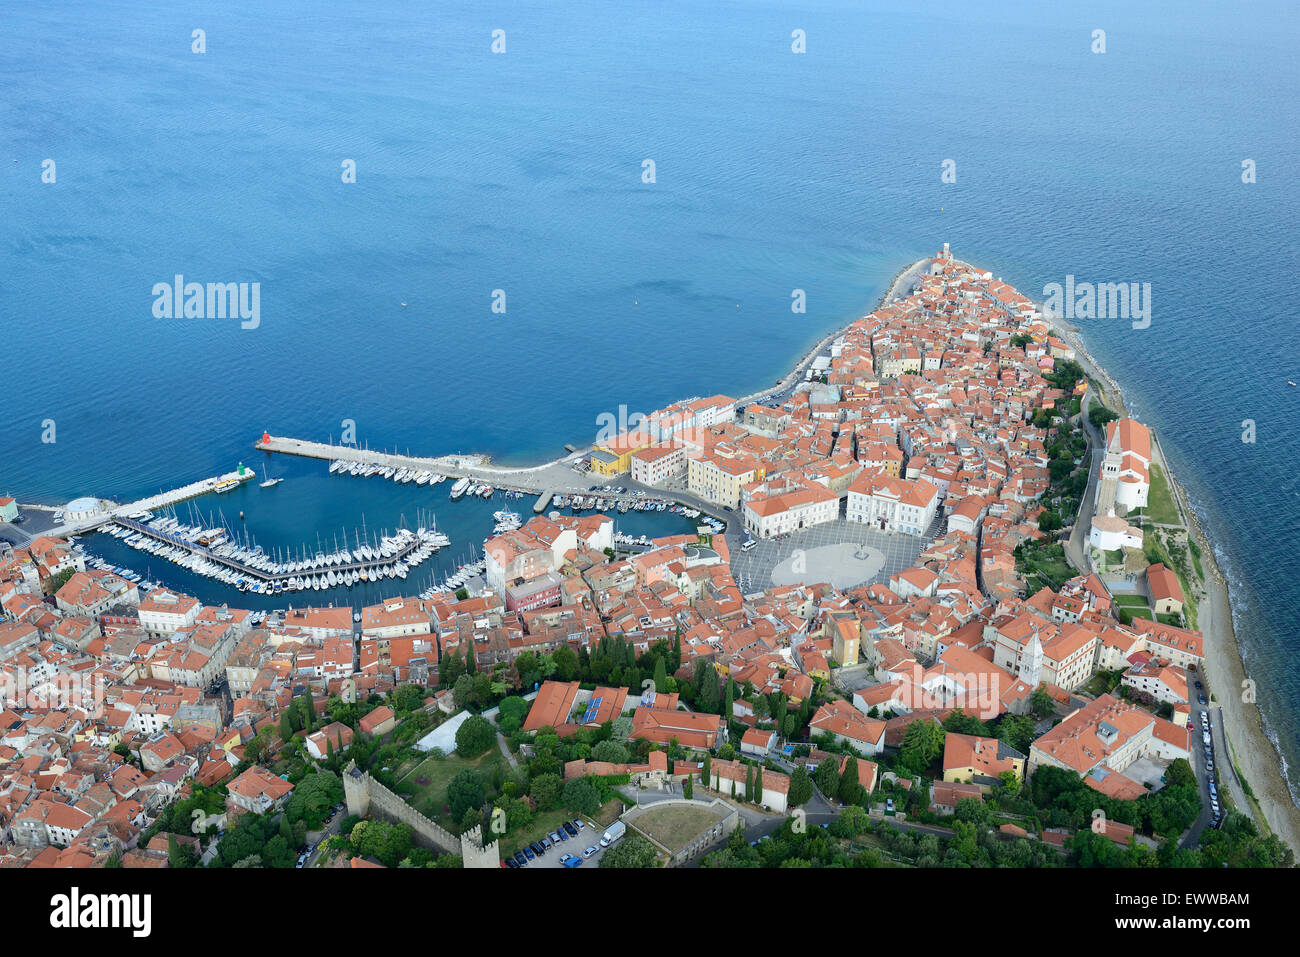 MEDIEVAL CITY JUTTING OUT INTO THE ADRIATIC SEA (aerial view). City of Piran (or Pirano, its Italian name). Slovenia. Stock Photo